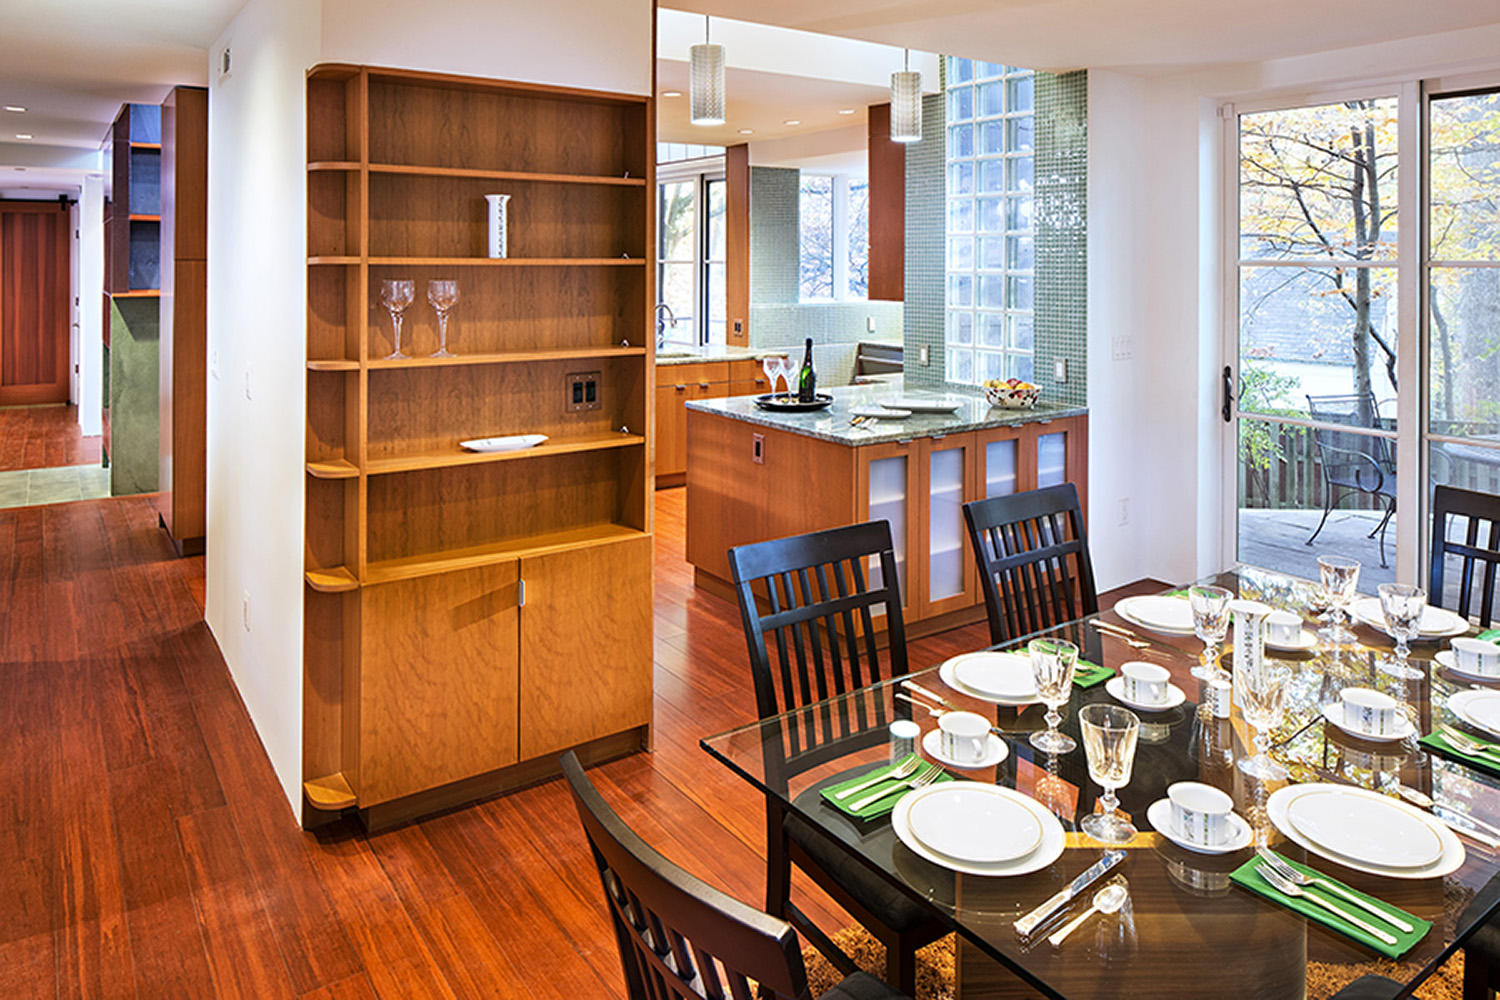 Kitchen-Dining Todd A. Smith Photography, LLC.